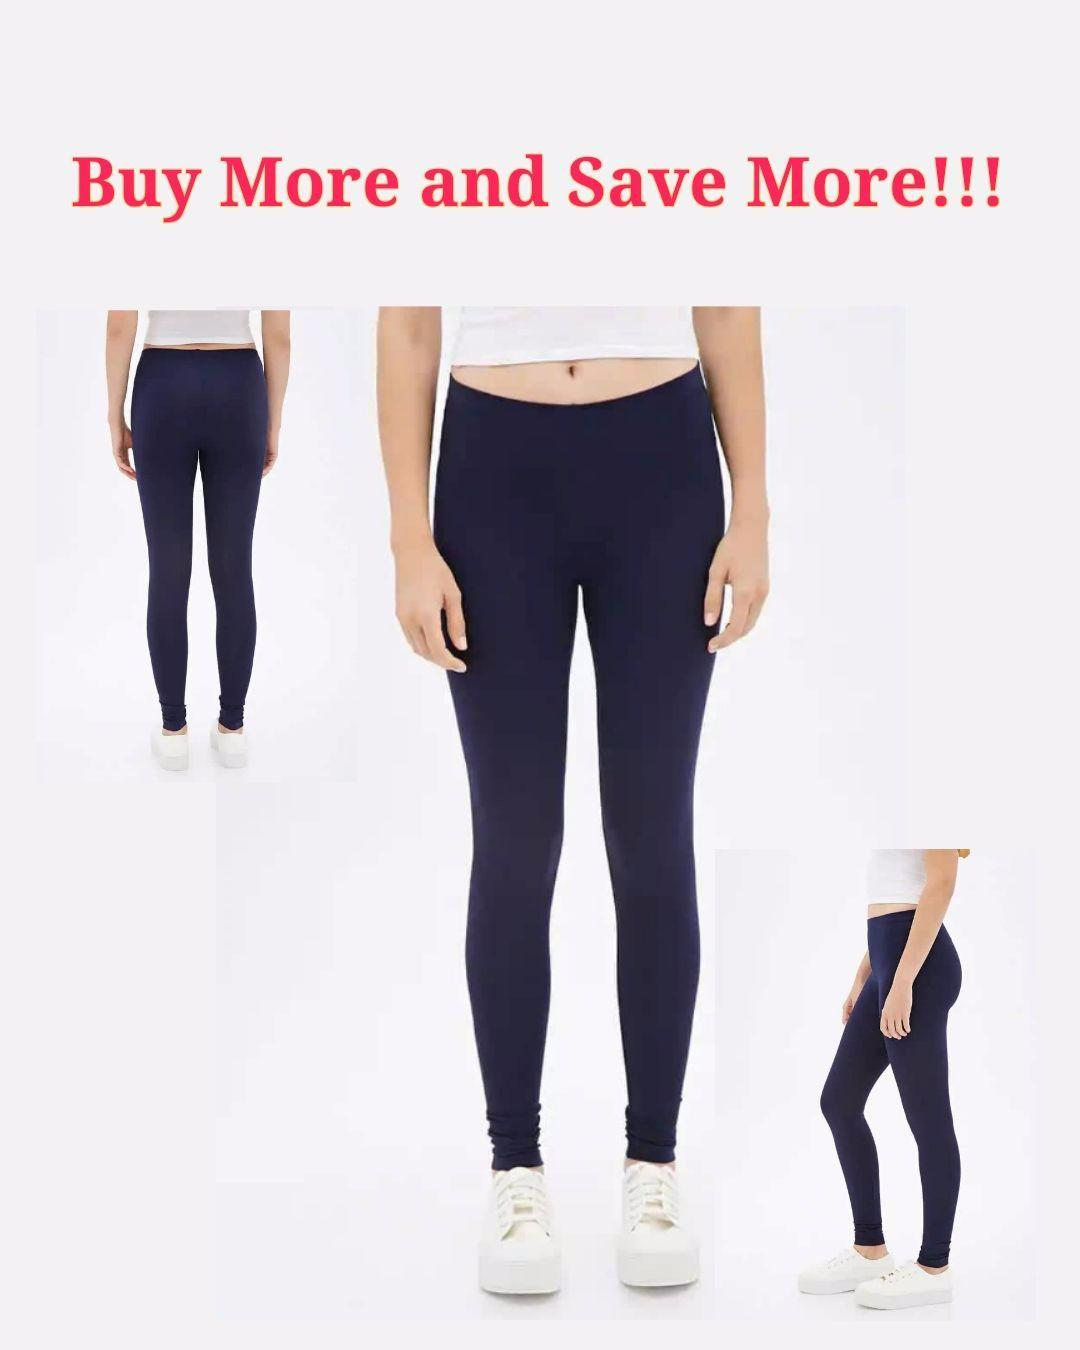 3744a847c35 Pants for Women for sale - Womens Fashion Pants Online Deals ...